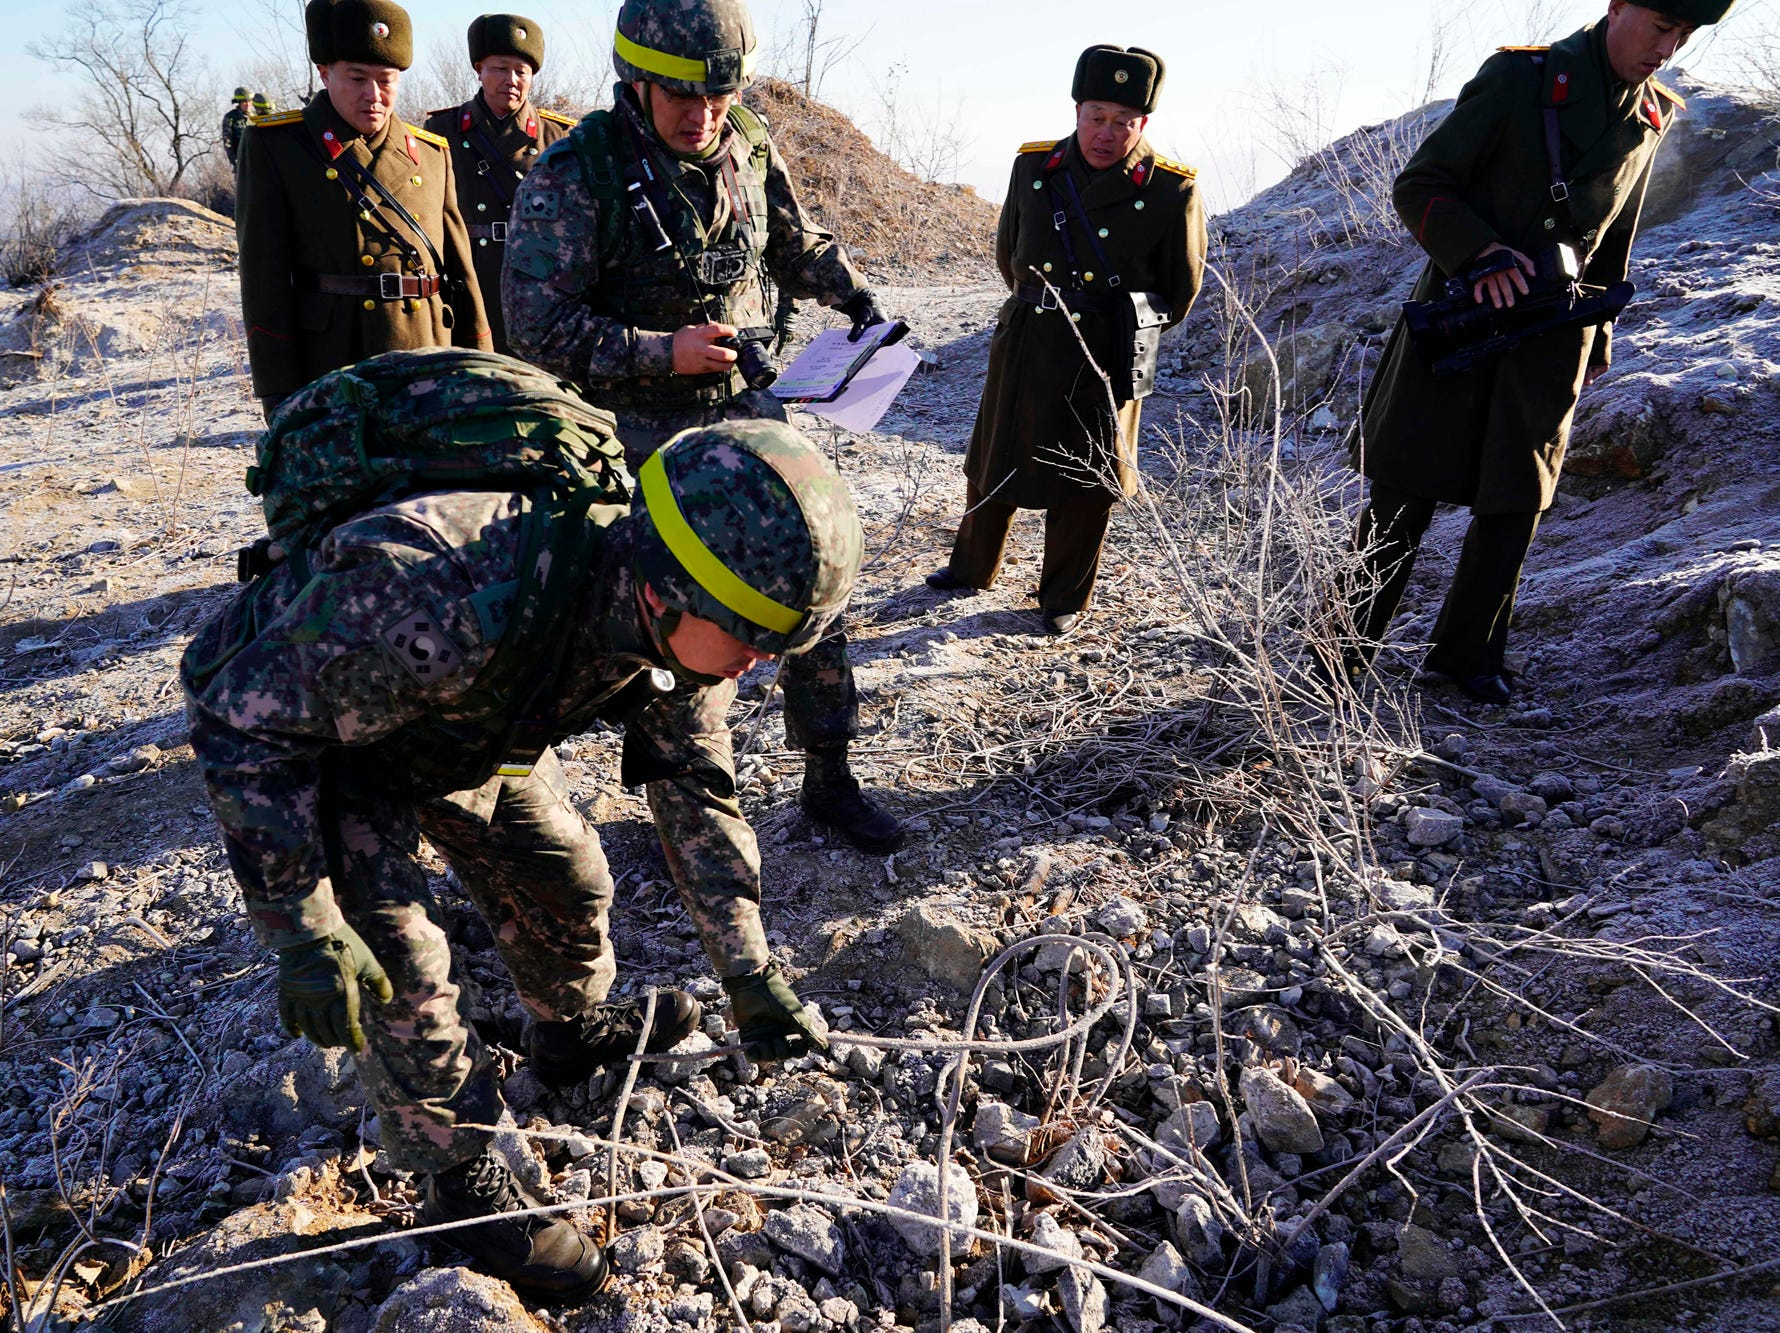 In this photo provided by South Korea Defense Ministry, South Korean army soldiers, wearing helmets, inspect at the dismantled North Korean guard post inside the Demilitarized Zone (DMZ) in the central section of the inter-Korean border in Cheorwon, Wednesday, Dec. 12, 2018. Dozens of North and South Korean soldiers crossed over the world's most heavily armed border Wednesday as they inspected the sites of their rival's front-line guard posts to verify they'd been removed, part of inter-Korean engagement efforts that come amid stalled U.S.-North Korea nuclear disarmament talks. (South Korea Defense Ministry via AP)